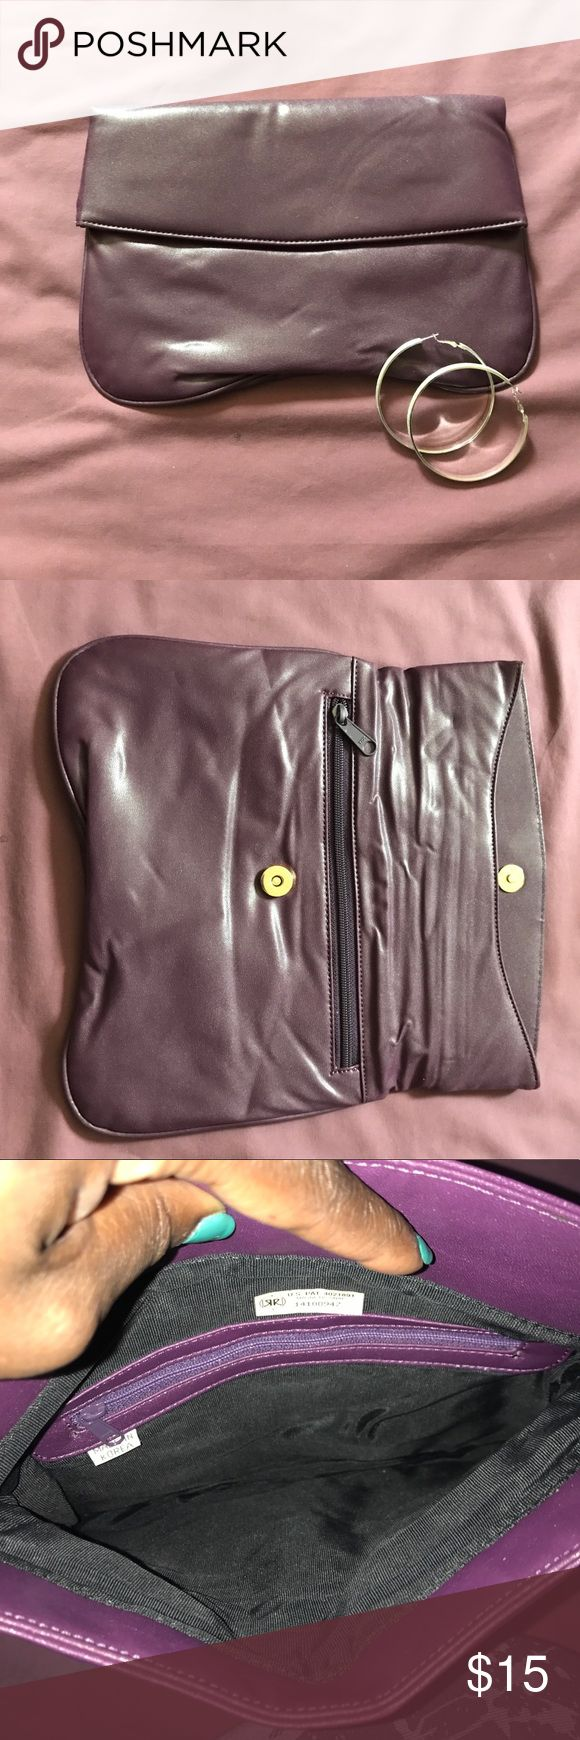 Simple Purple Clutch A cute and roomy clutch perfect for date night or girls night out. Interior and exterior in good condition. Bags Clutches & Wristlets